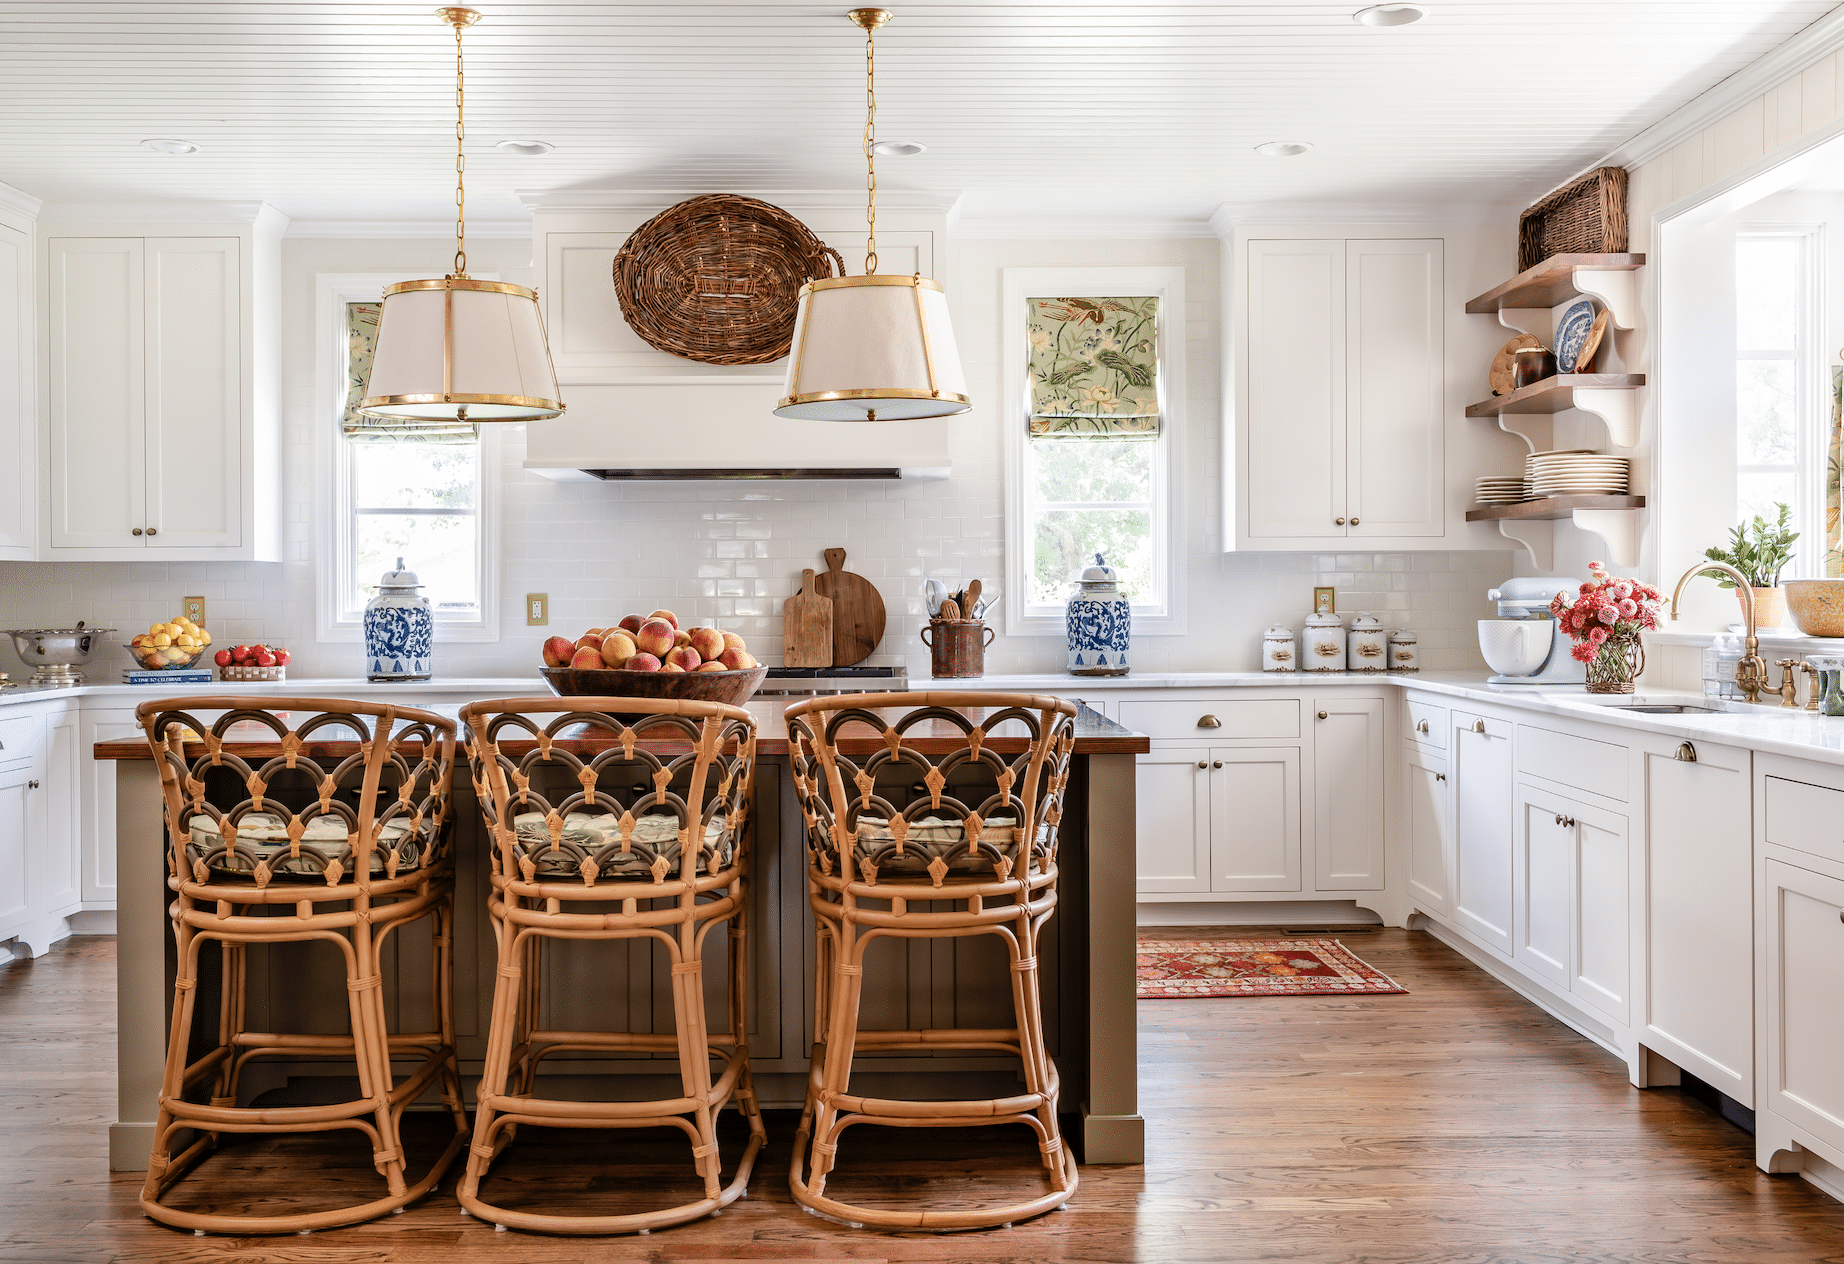 Aiken, SC James Farmer designed house tour kitchen